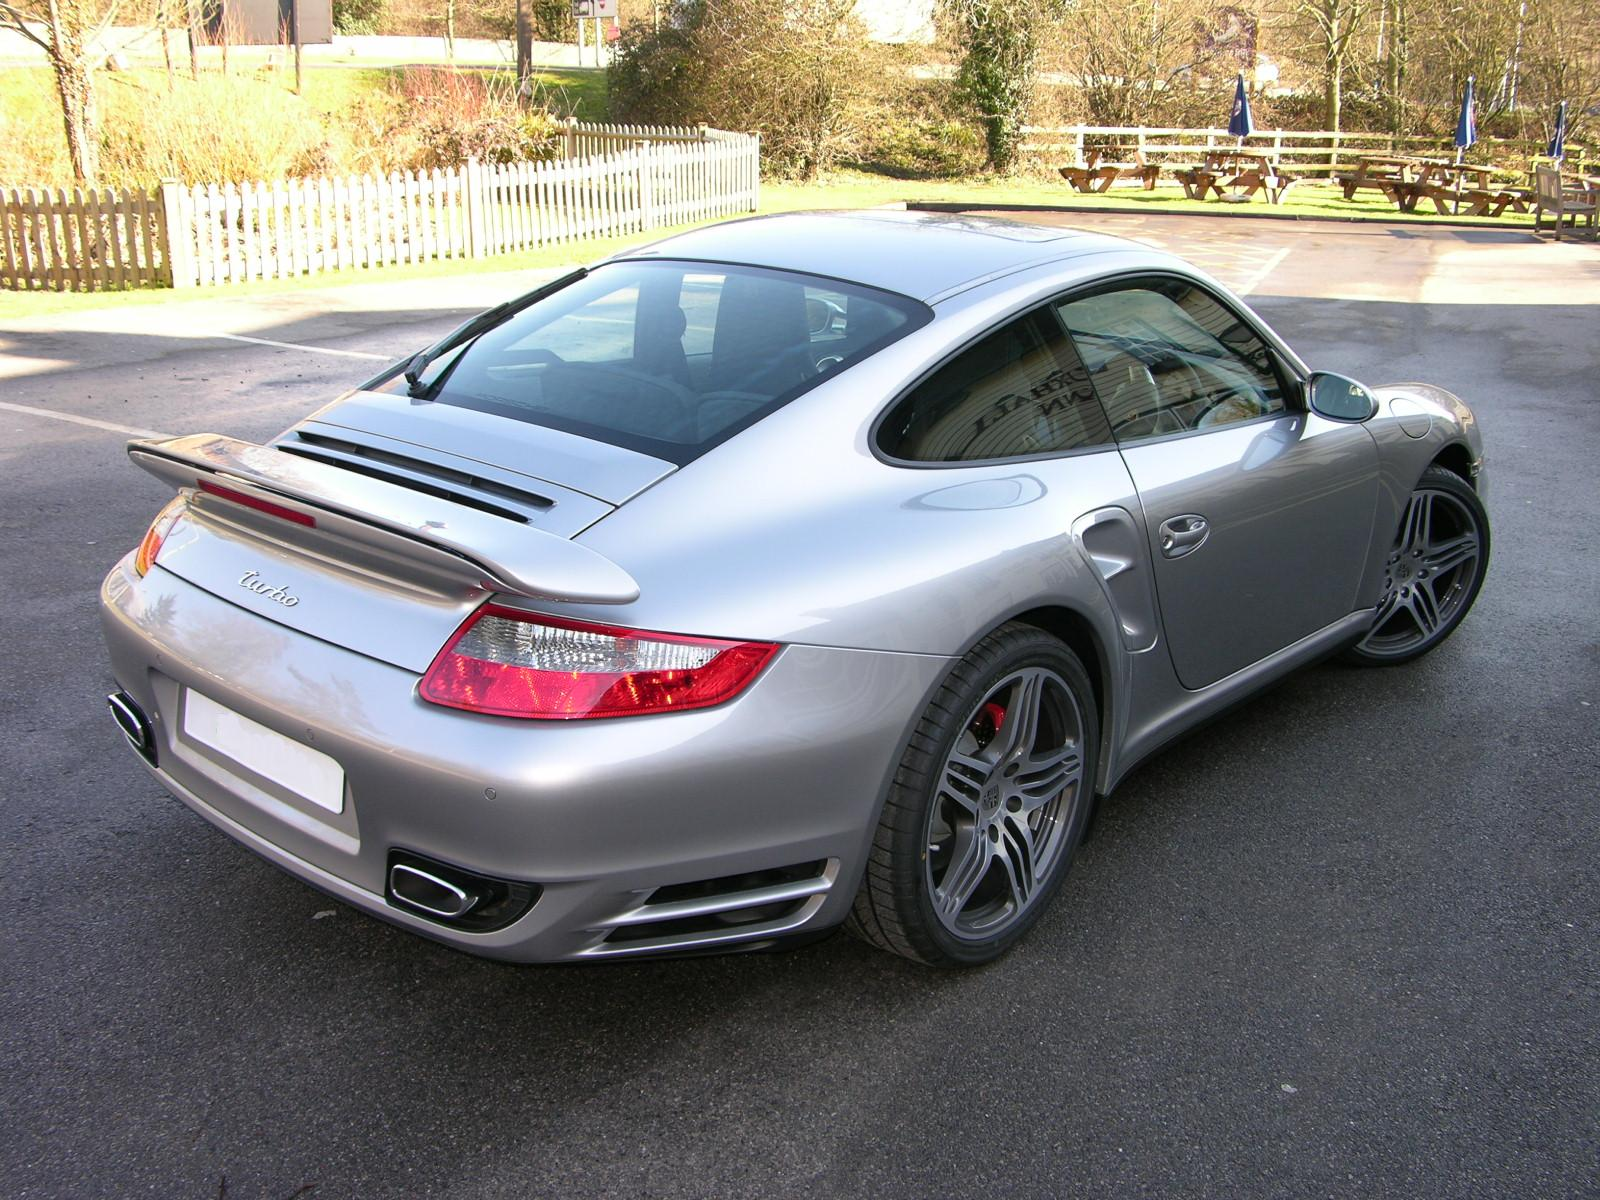 file 2009 porsche 911 turbo flickr the car spy 18. Black Bedroom Furniture Sets. Home Design Ideas